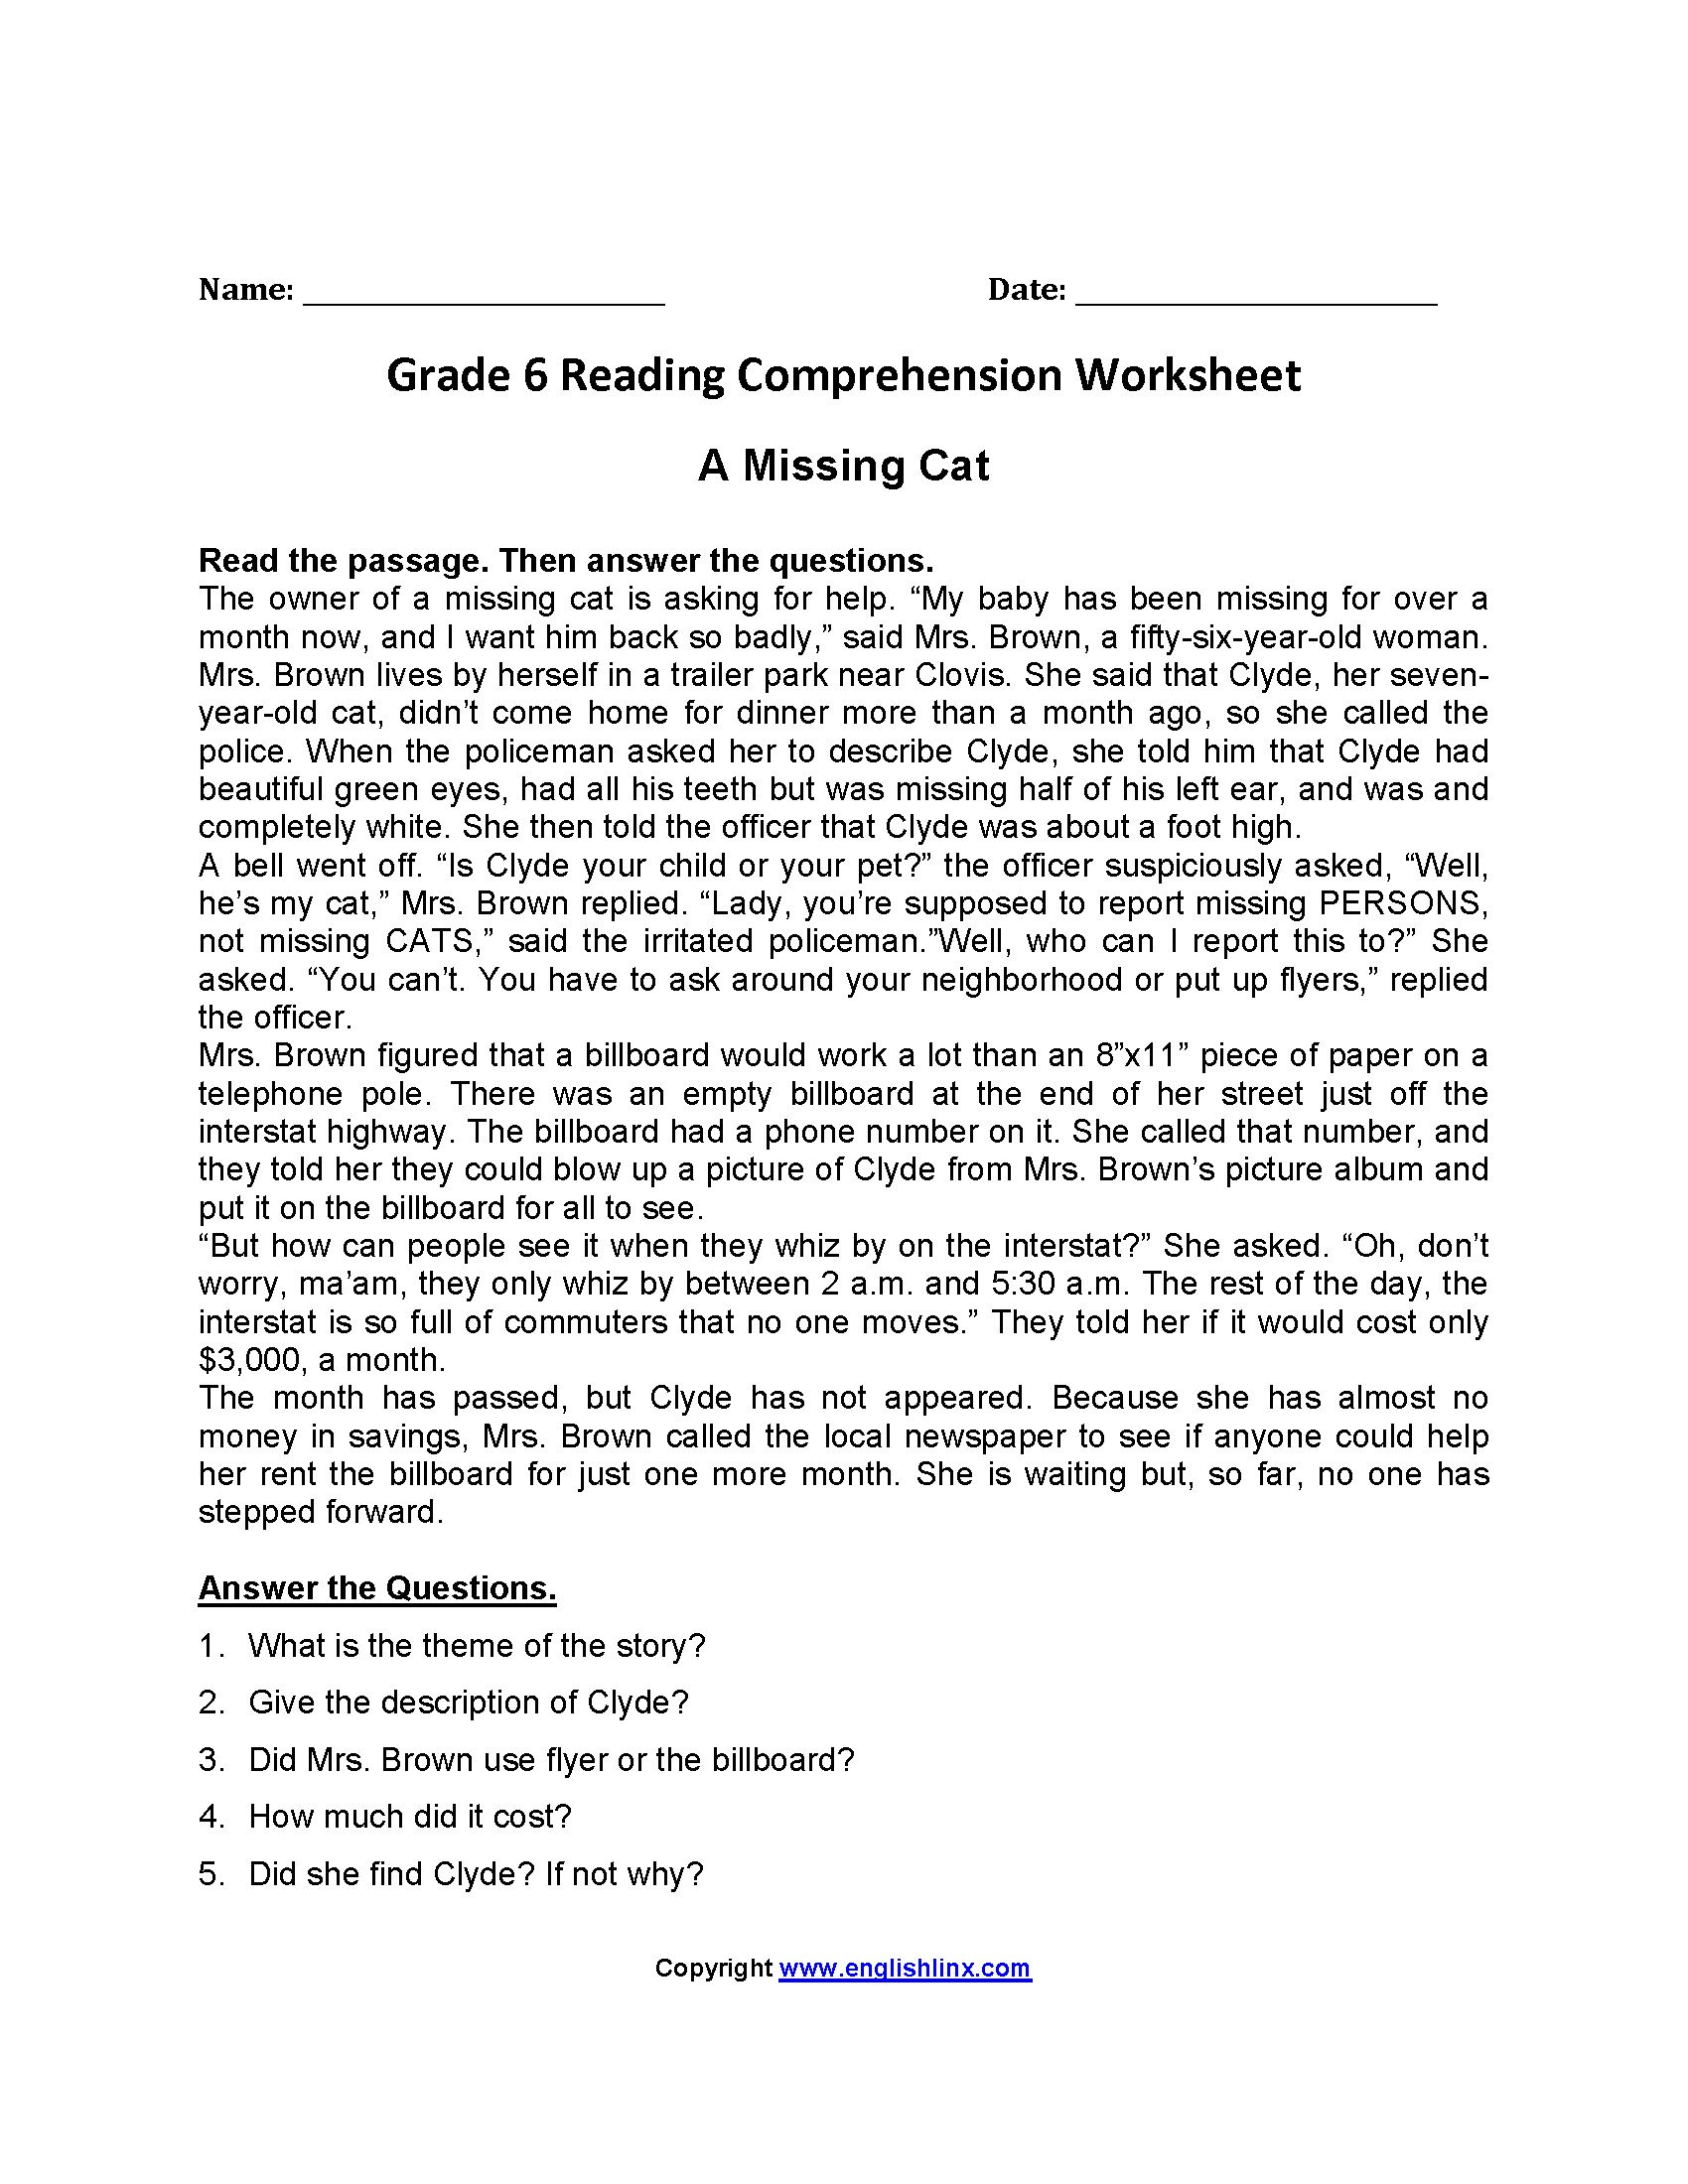 Comprehension Worksheets 6th Grade Sixth Grade Worksheets